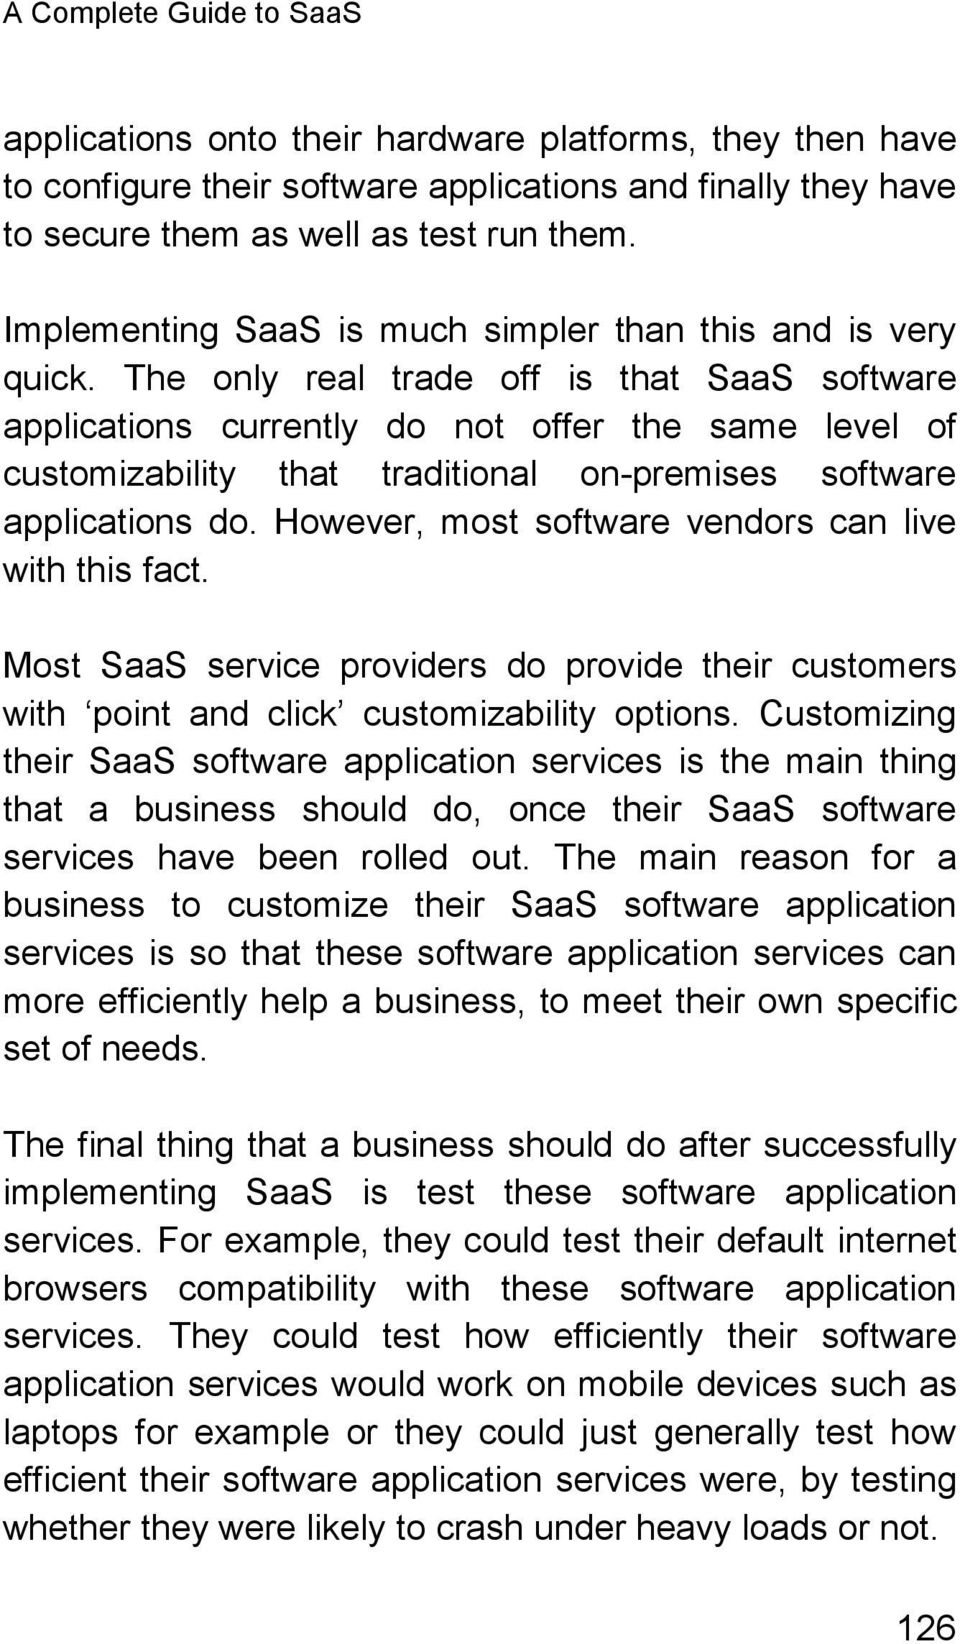 The only real trade off is that SaaS software applications currently do not offer the same level of customizability that traditional on-premises software applications do.